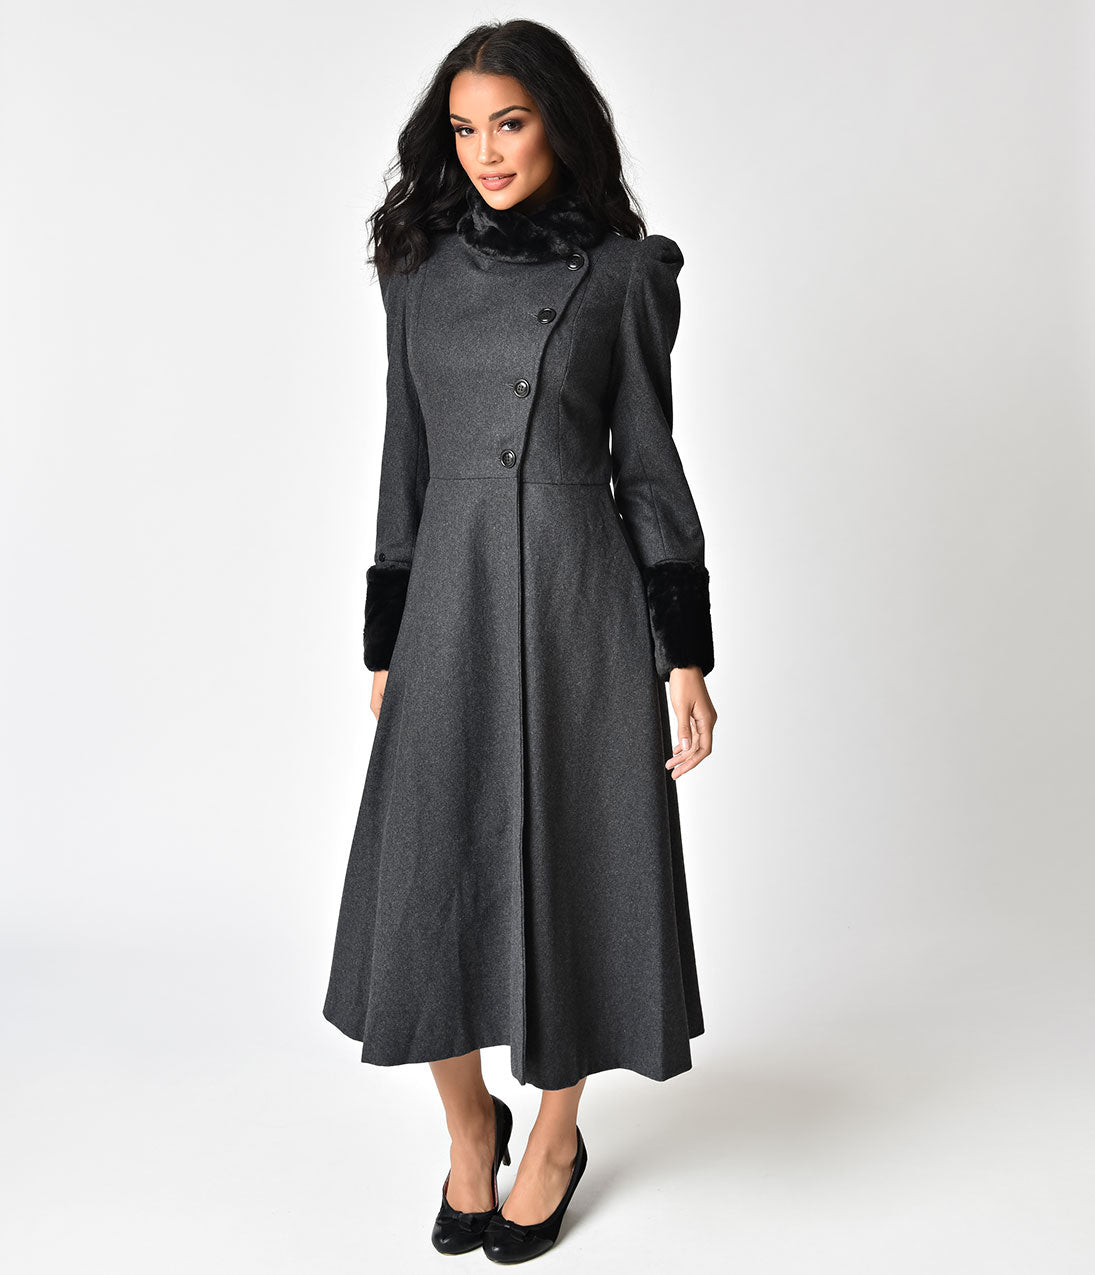 Vintage Coats & Jackets | Retro Coats and Jackets Voodoo Vixen Grey Wool  Black Fur Violet Long Coat $131.00 AT vintagedancer.com